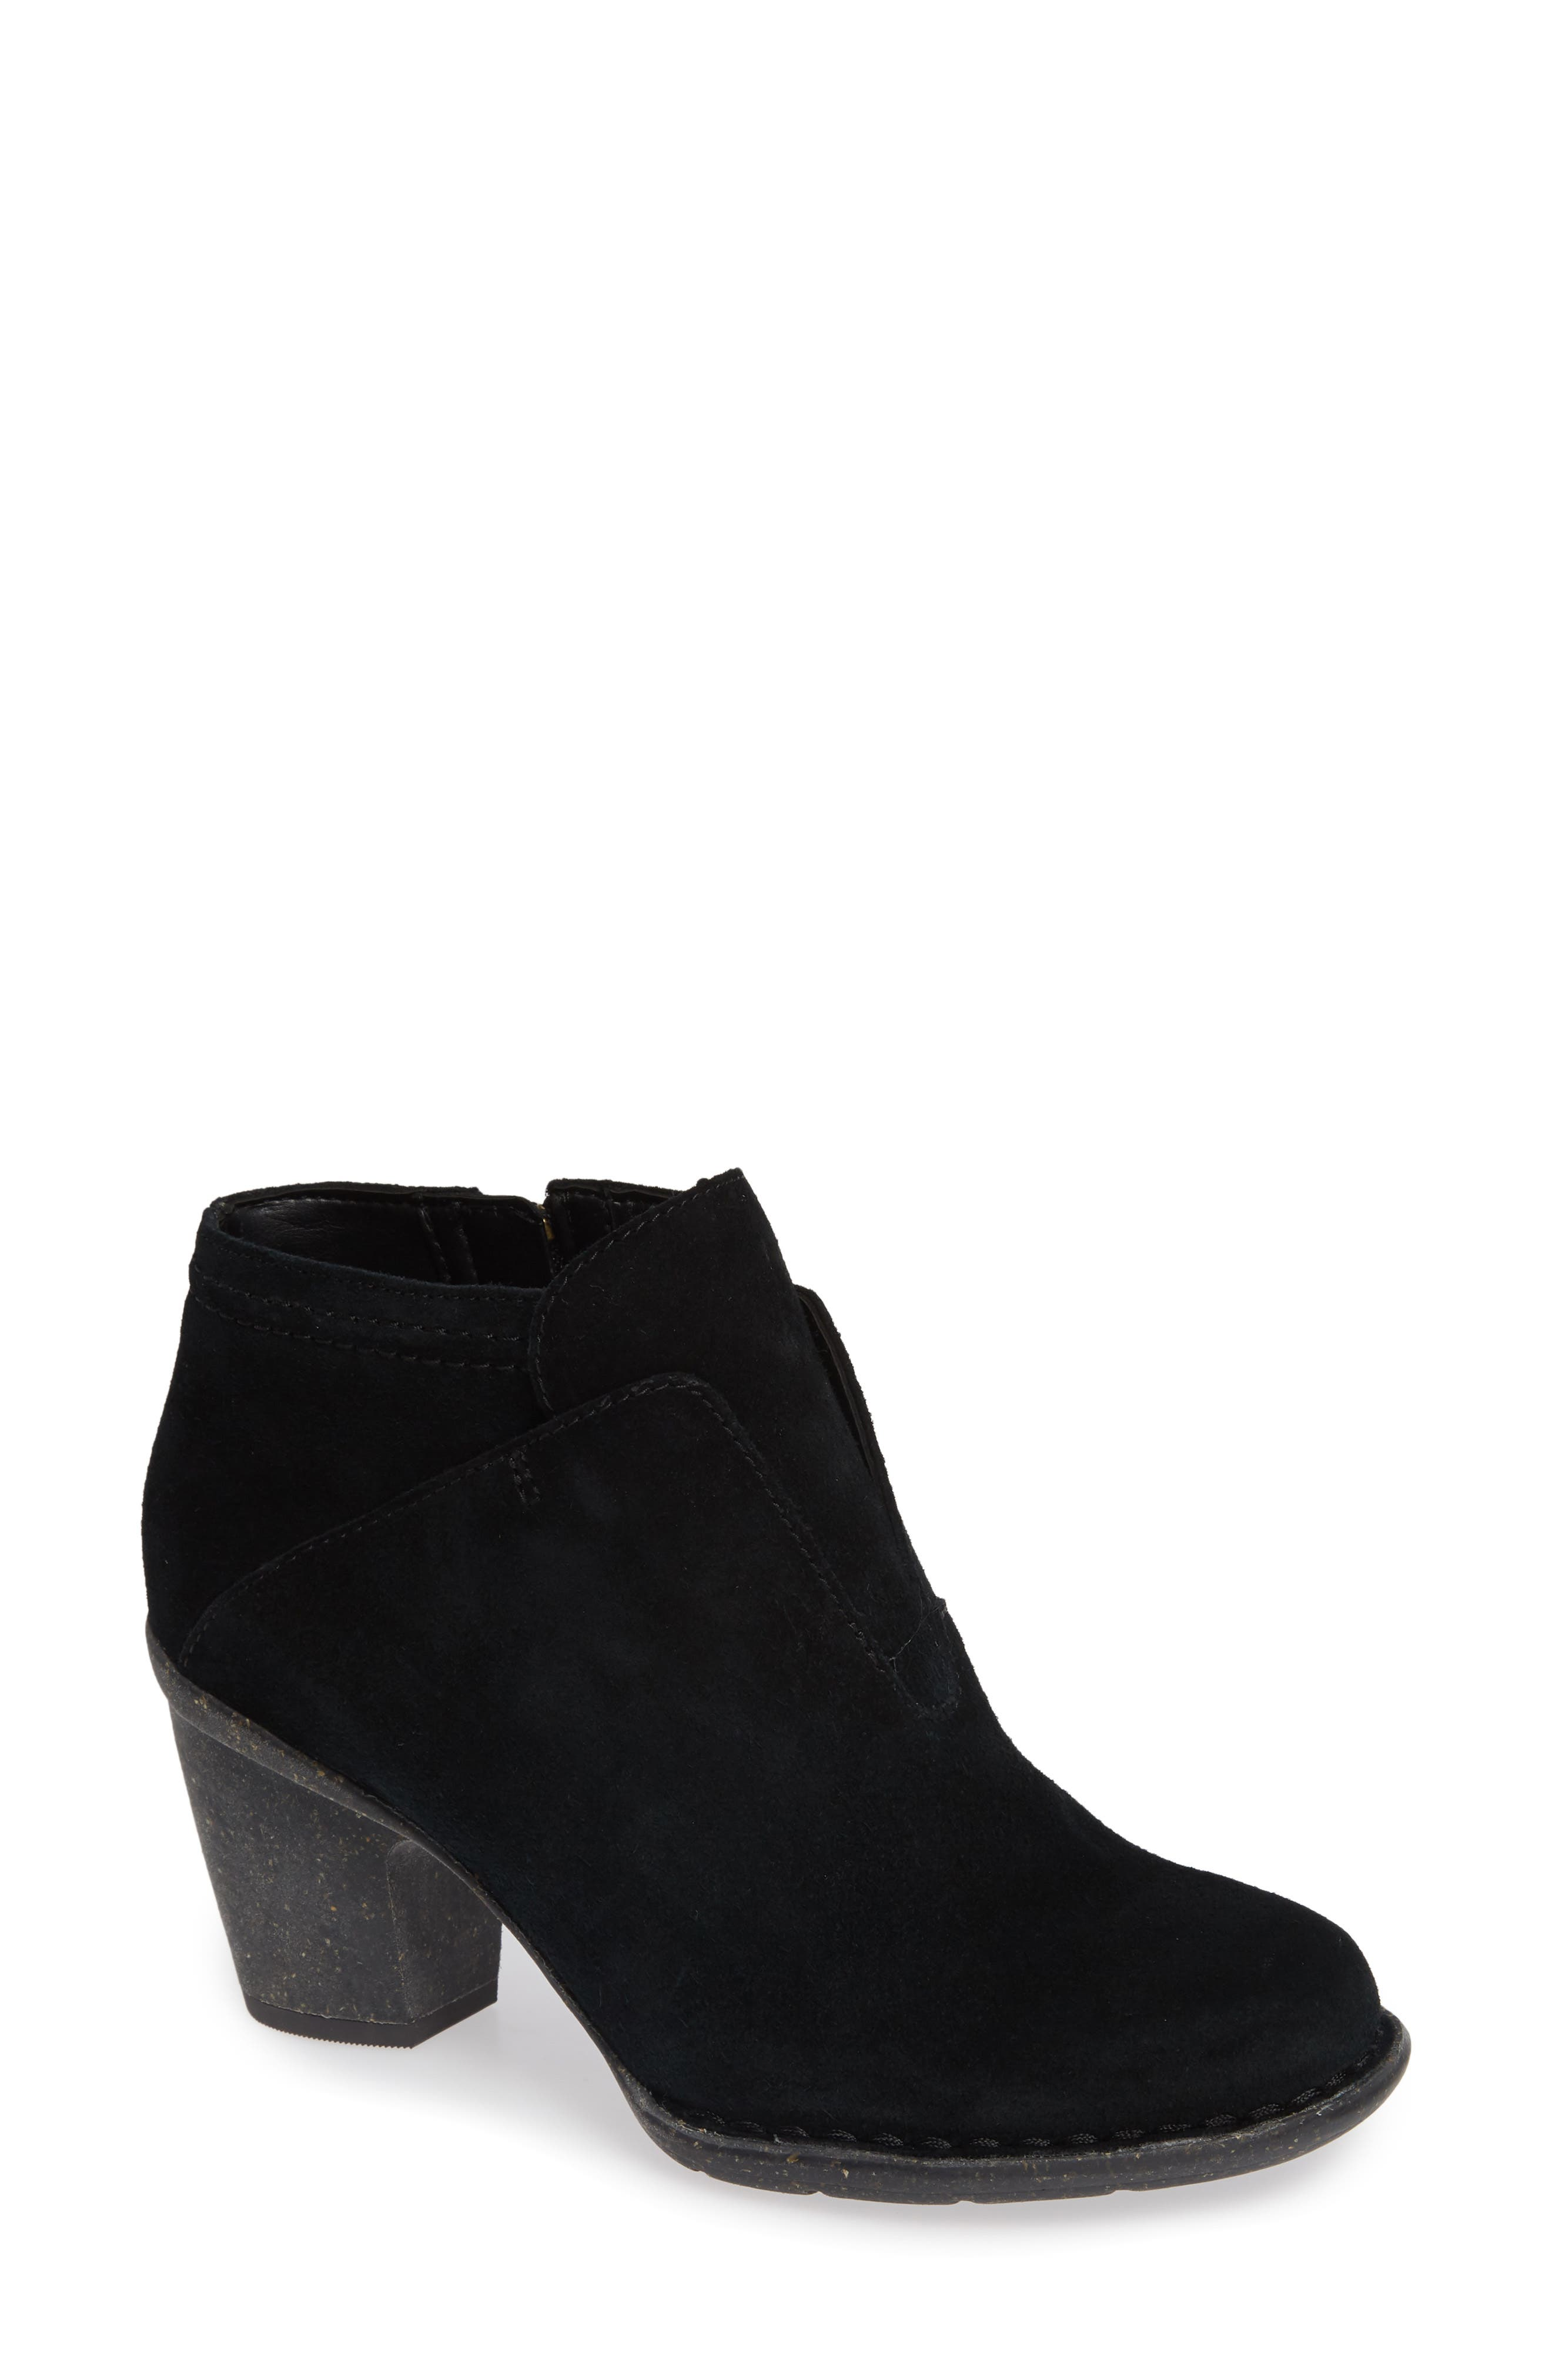 CLARKS<SUP>®</SUP>, Carleta York Bootie, Main thumbnail 1, color, BLACK SUEDE